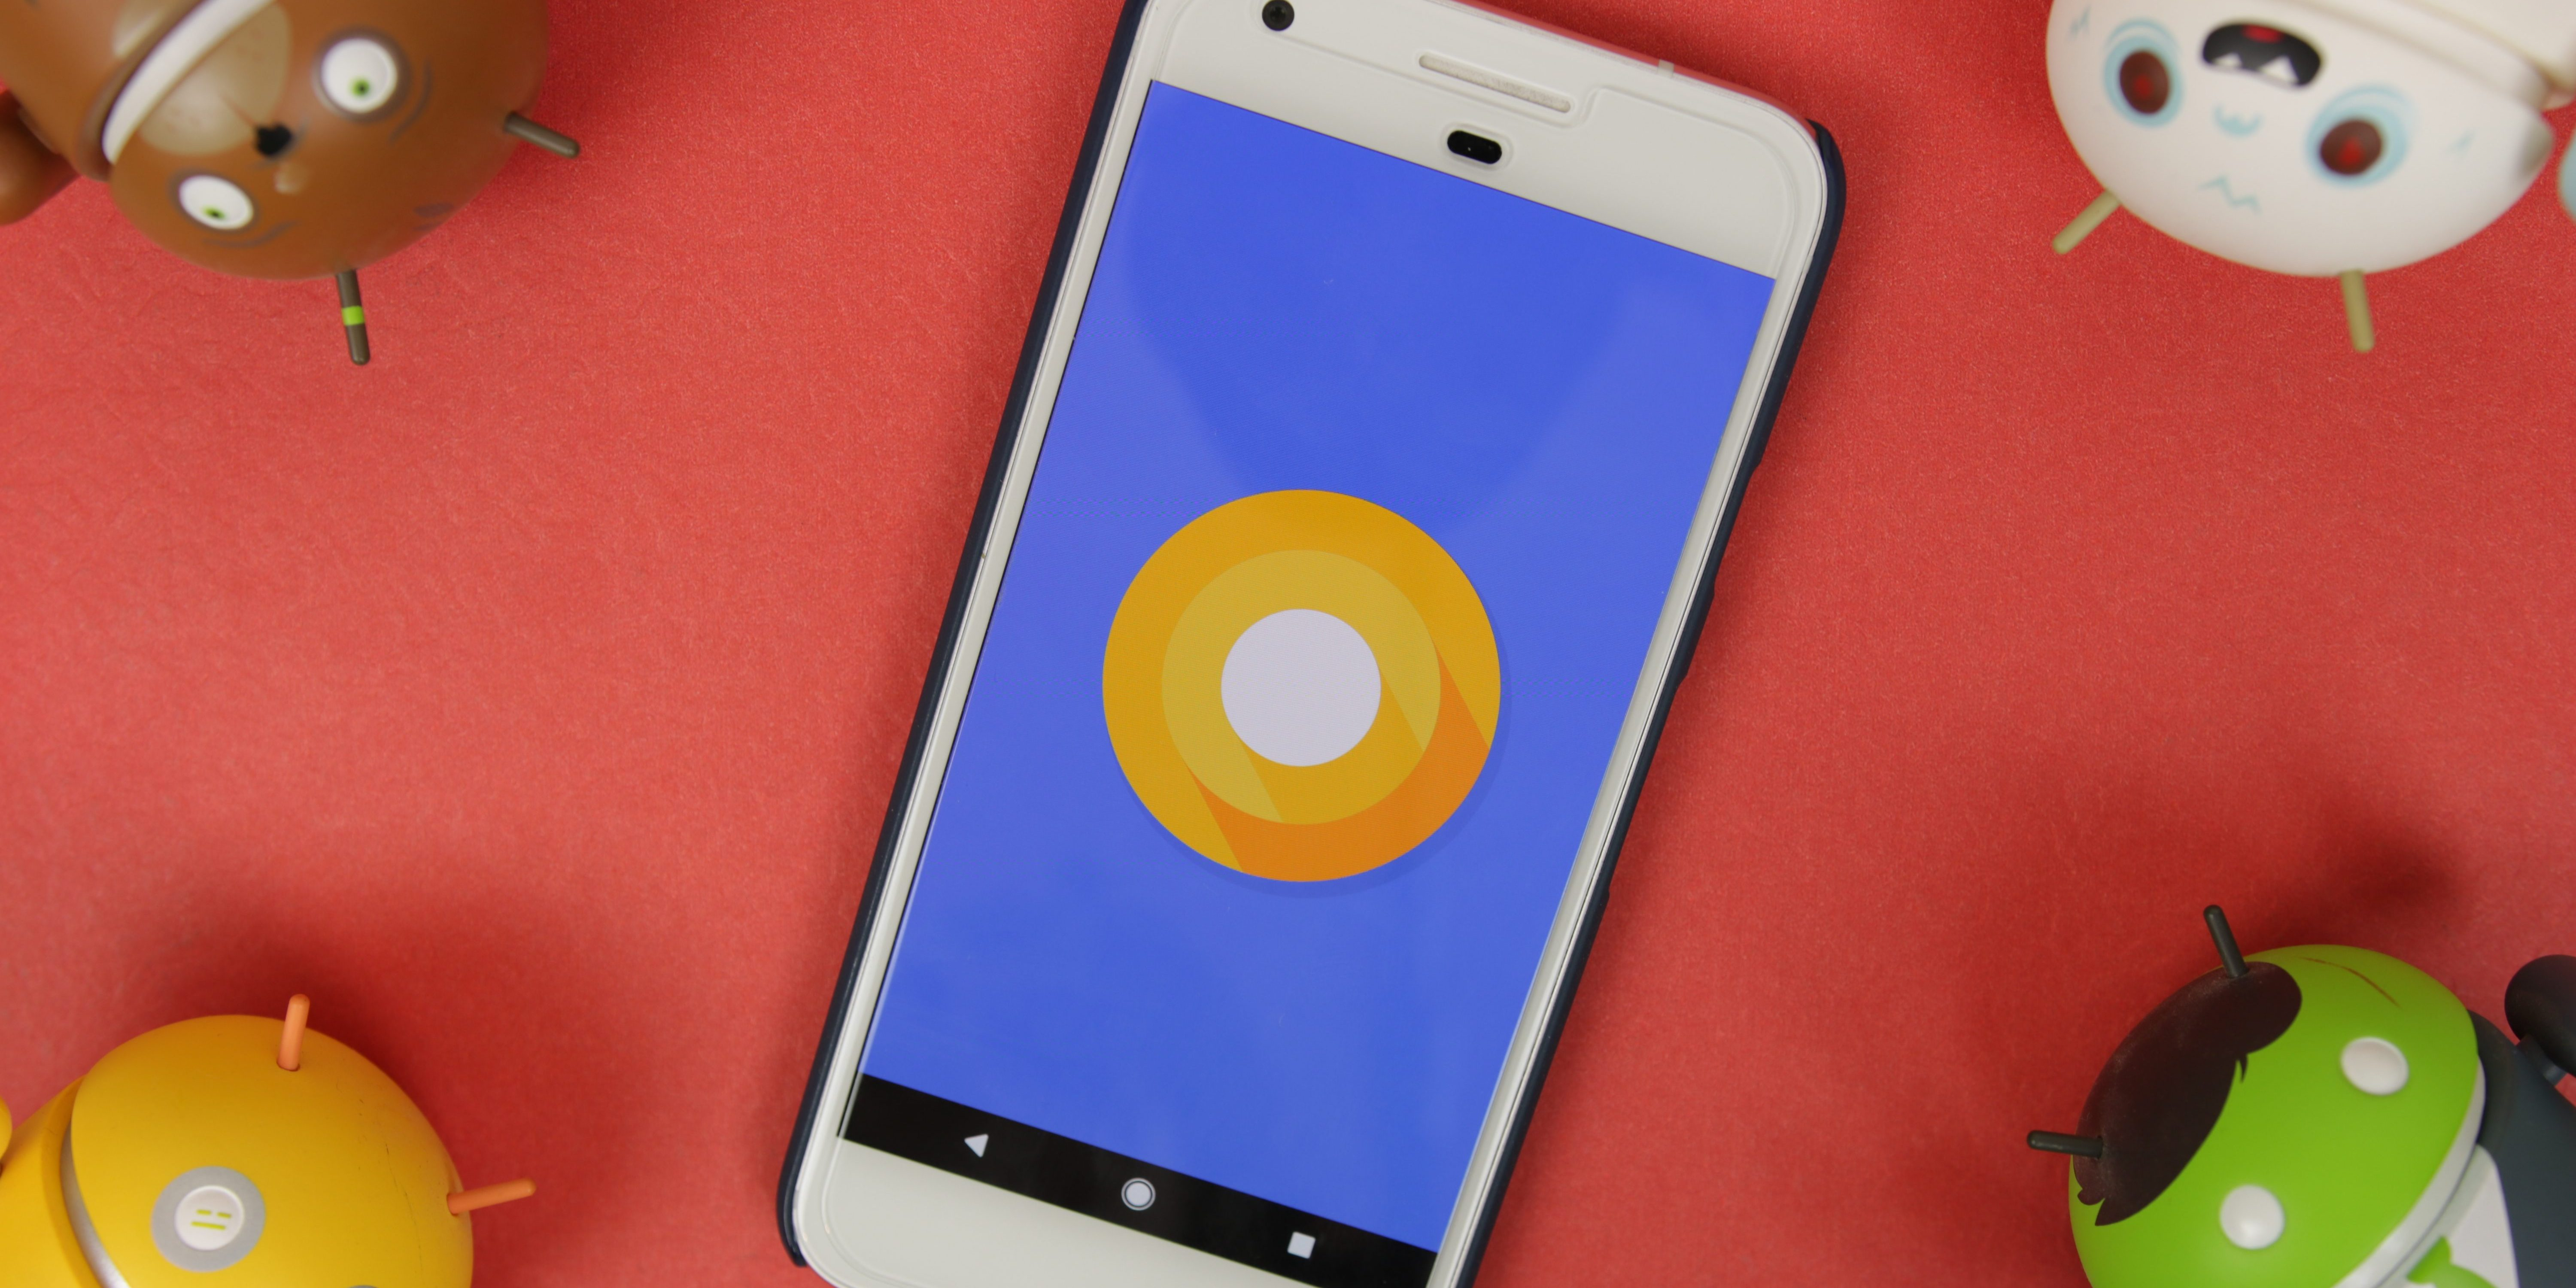 Hands-on: New features in Android 8.0 Oreo incl. new app shortcuts, revamped notifications, picture-in-picture, more [Video]